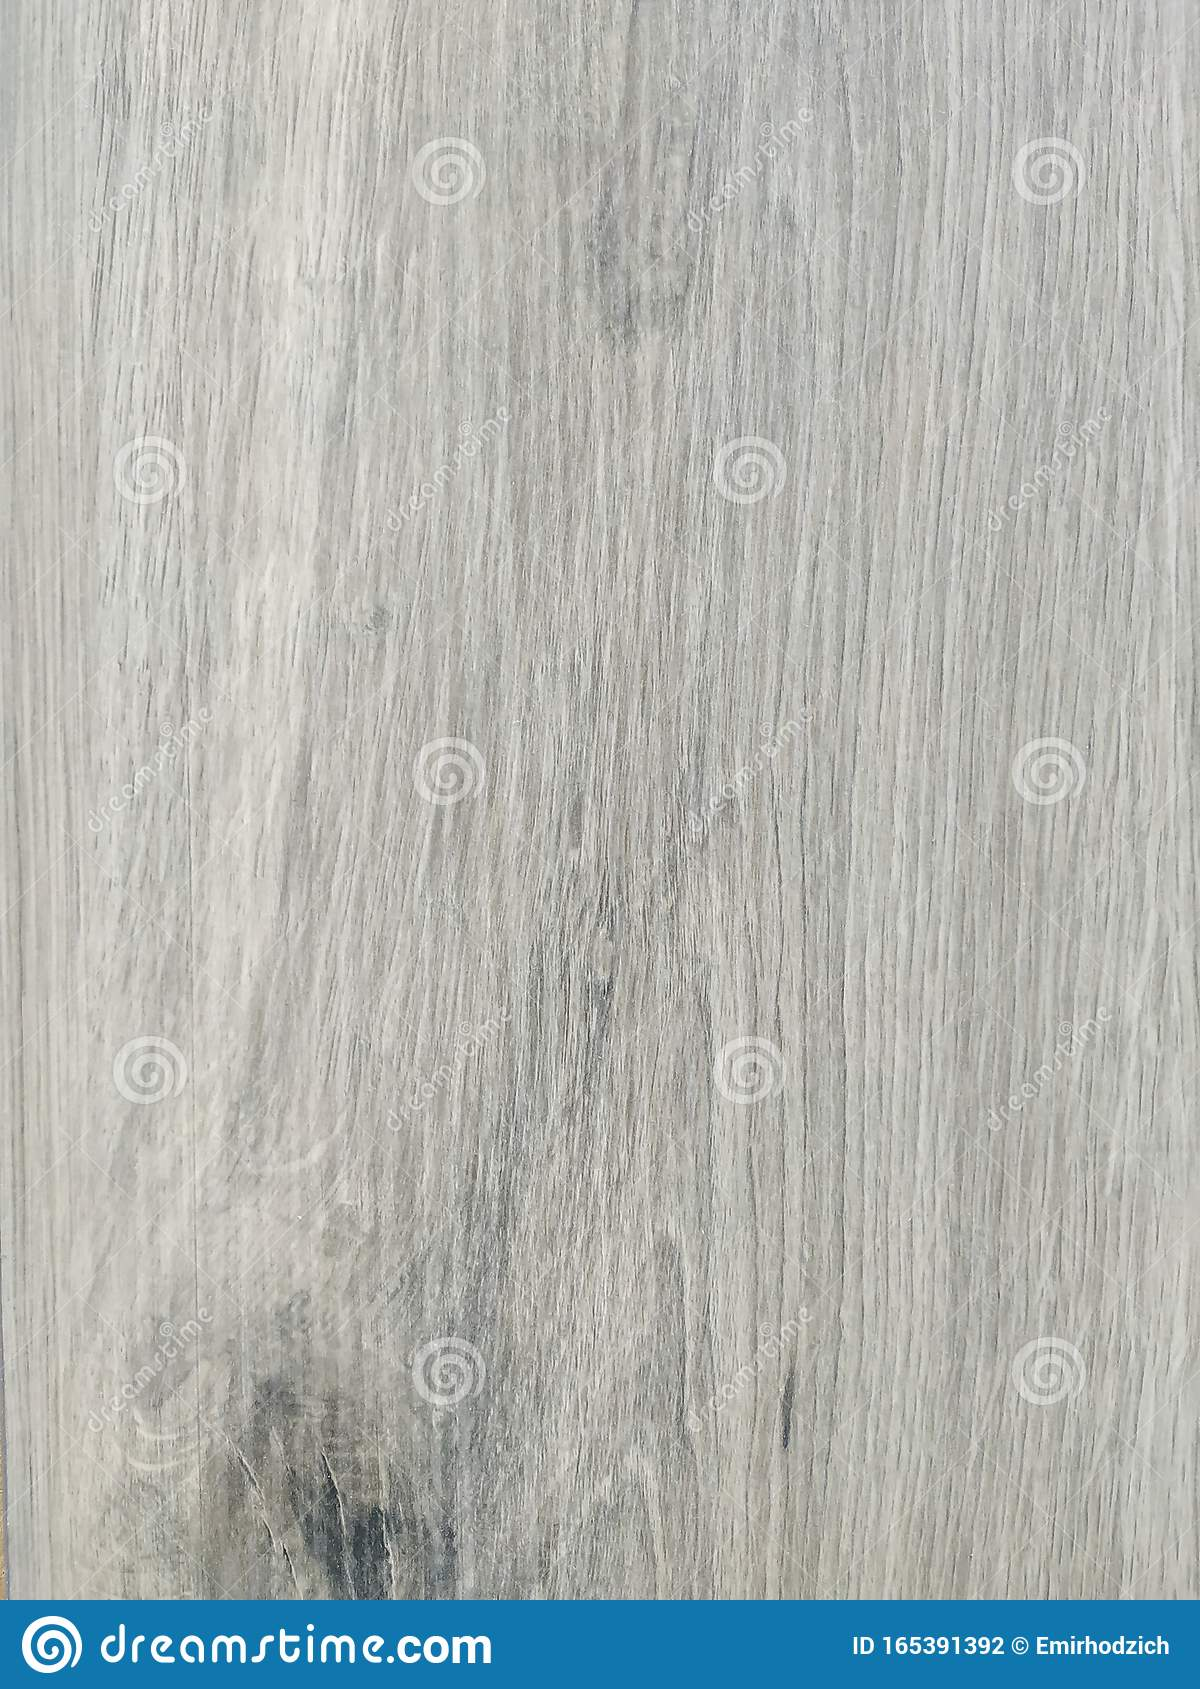 Grey And Light Wooden Plank Board Wallpaper Background For Interior And Exterior Decoration Stock Photo Image Of Abstract Grungy 165391392